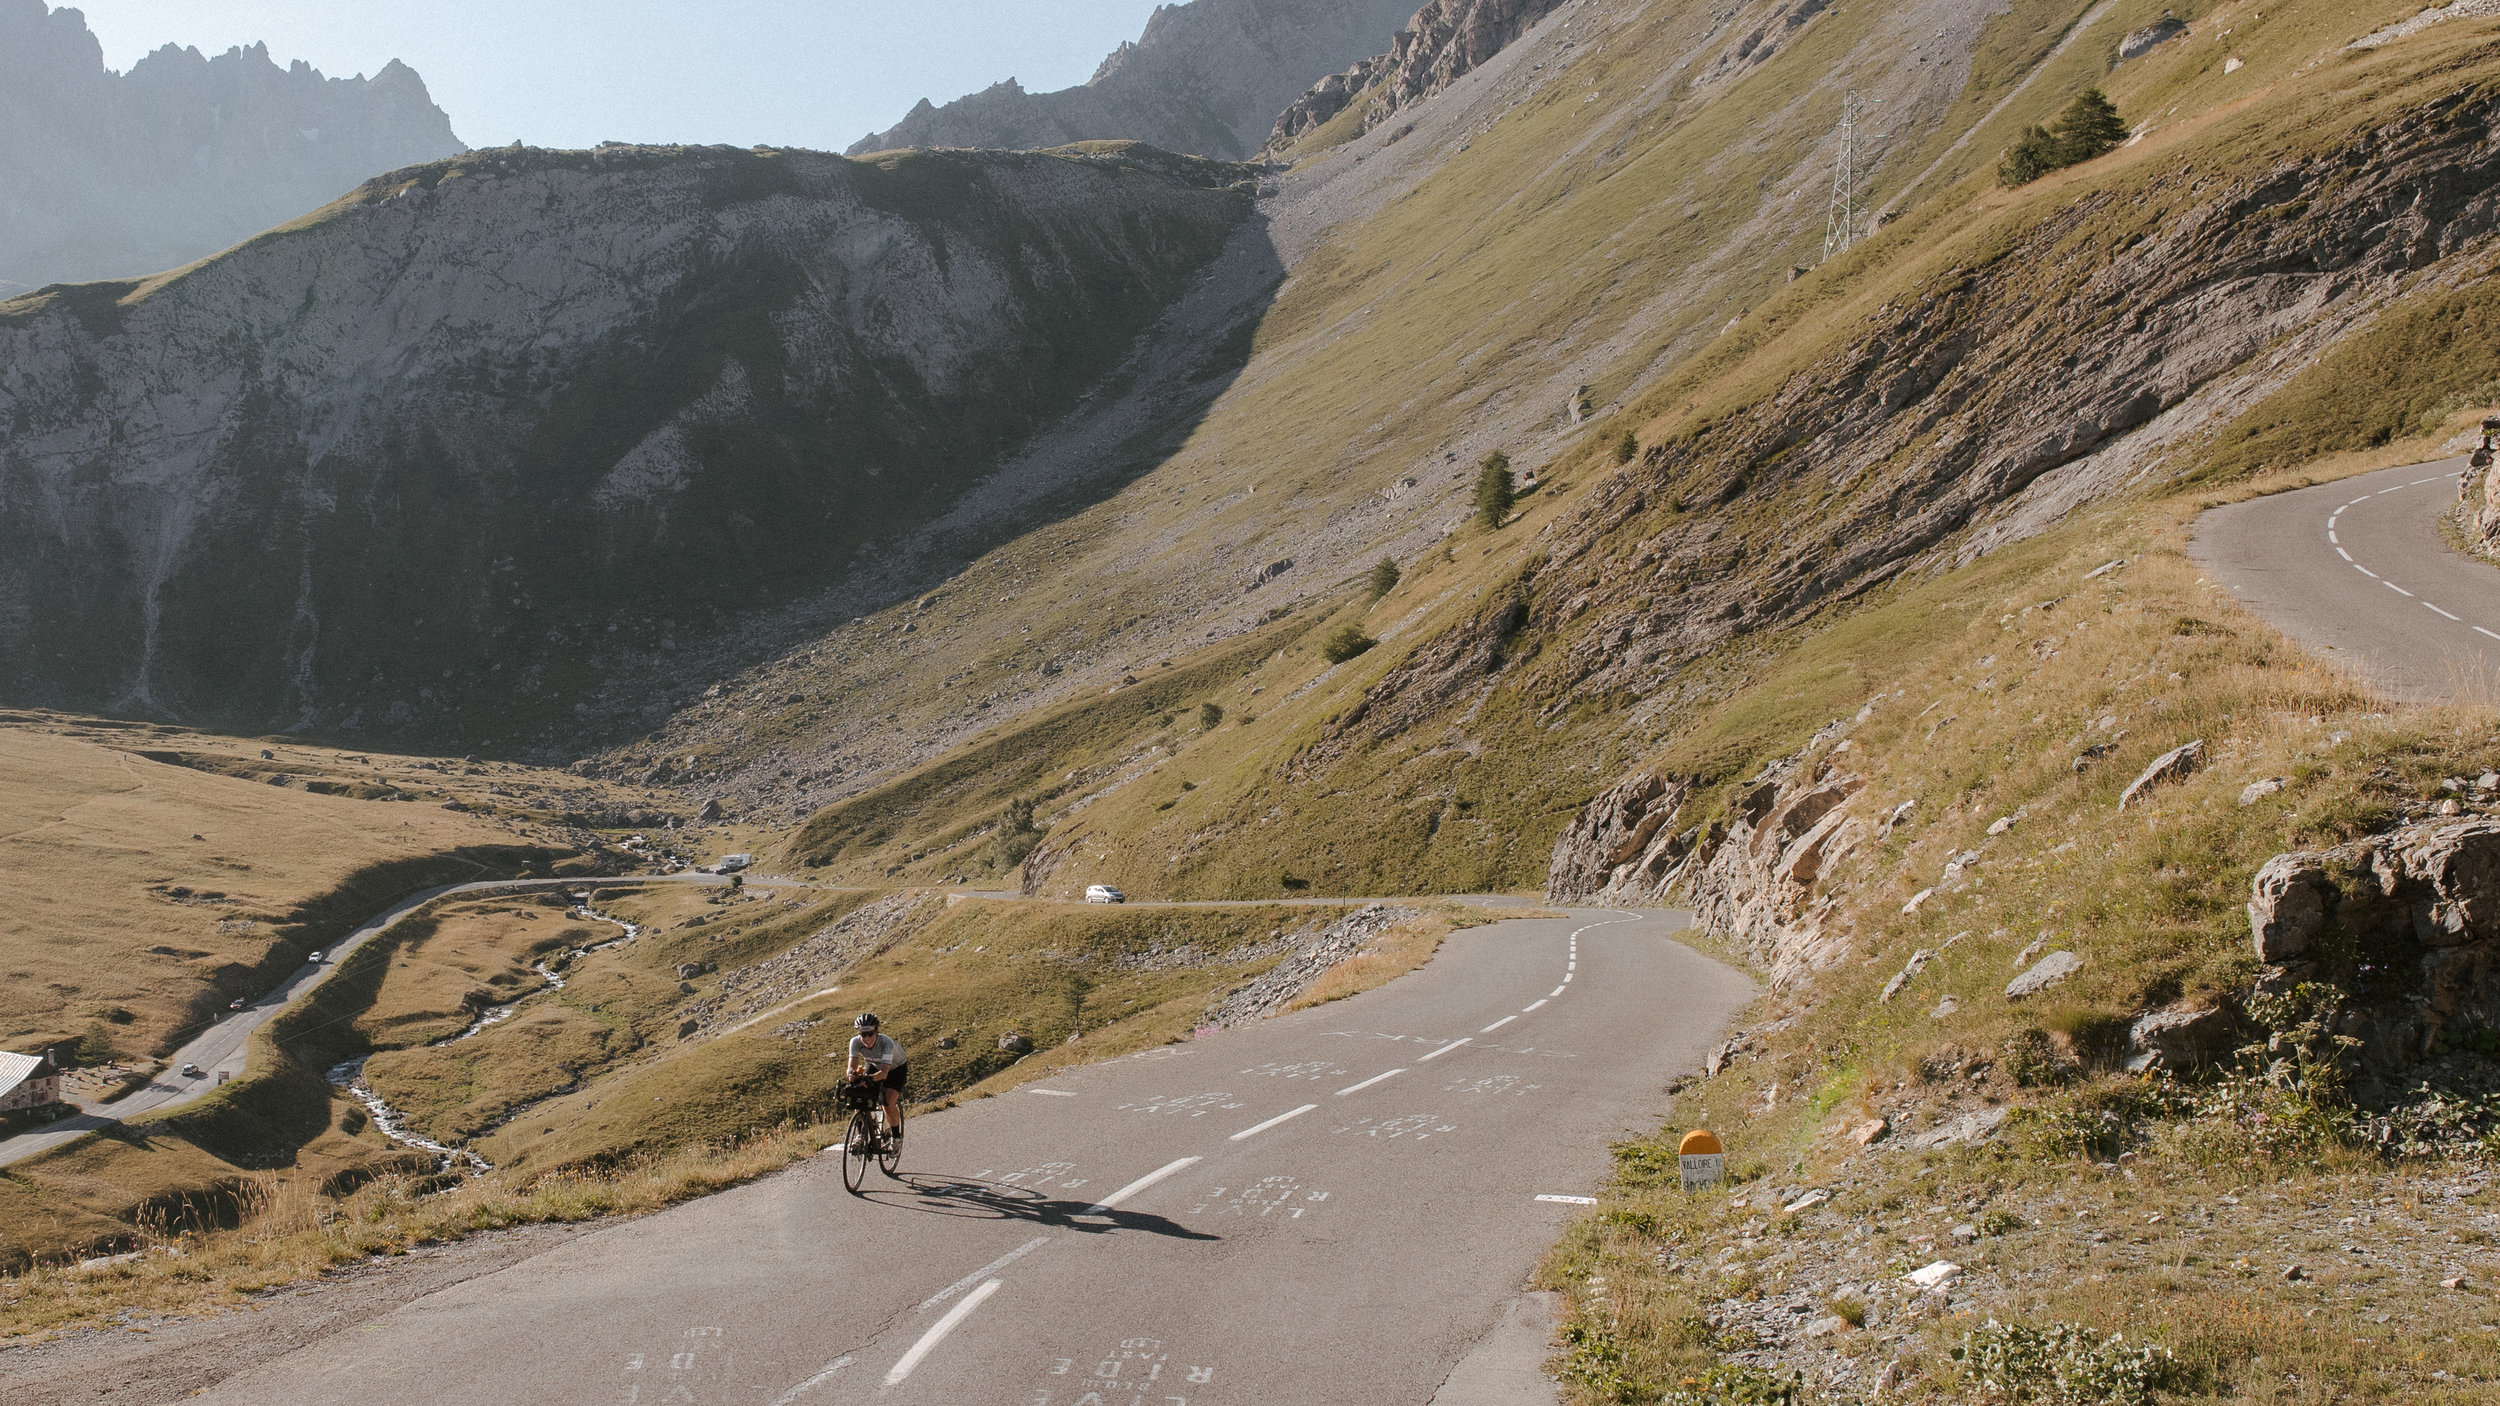 Fiona cruises along roads painted with names of Tour de France riders. Photo: Angus Sung©